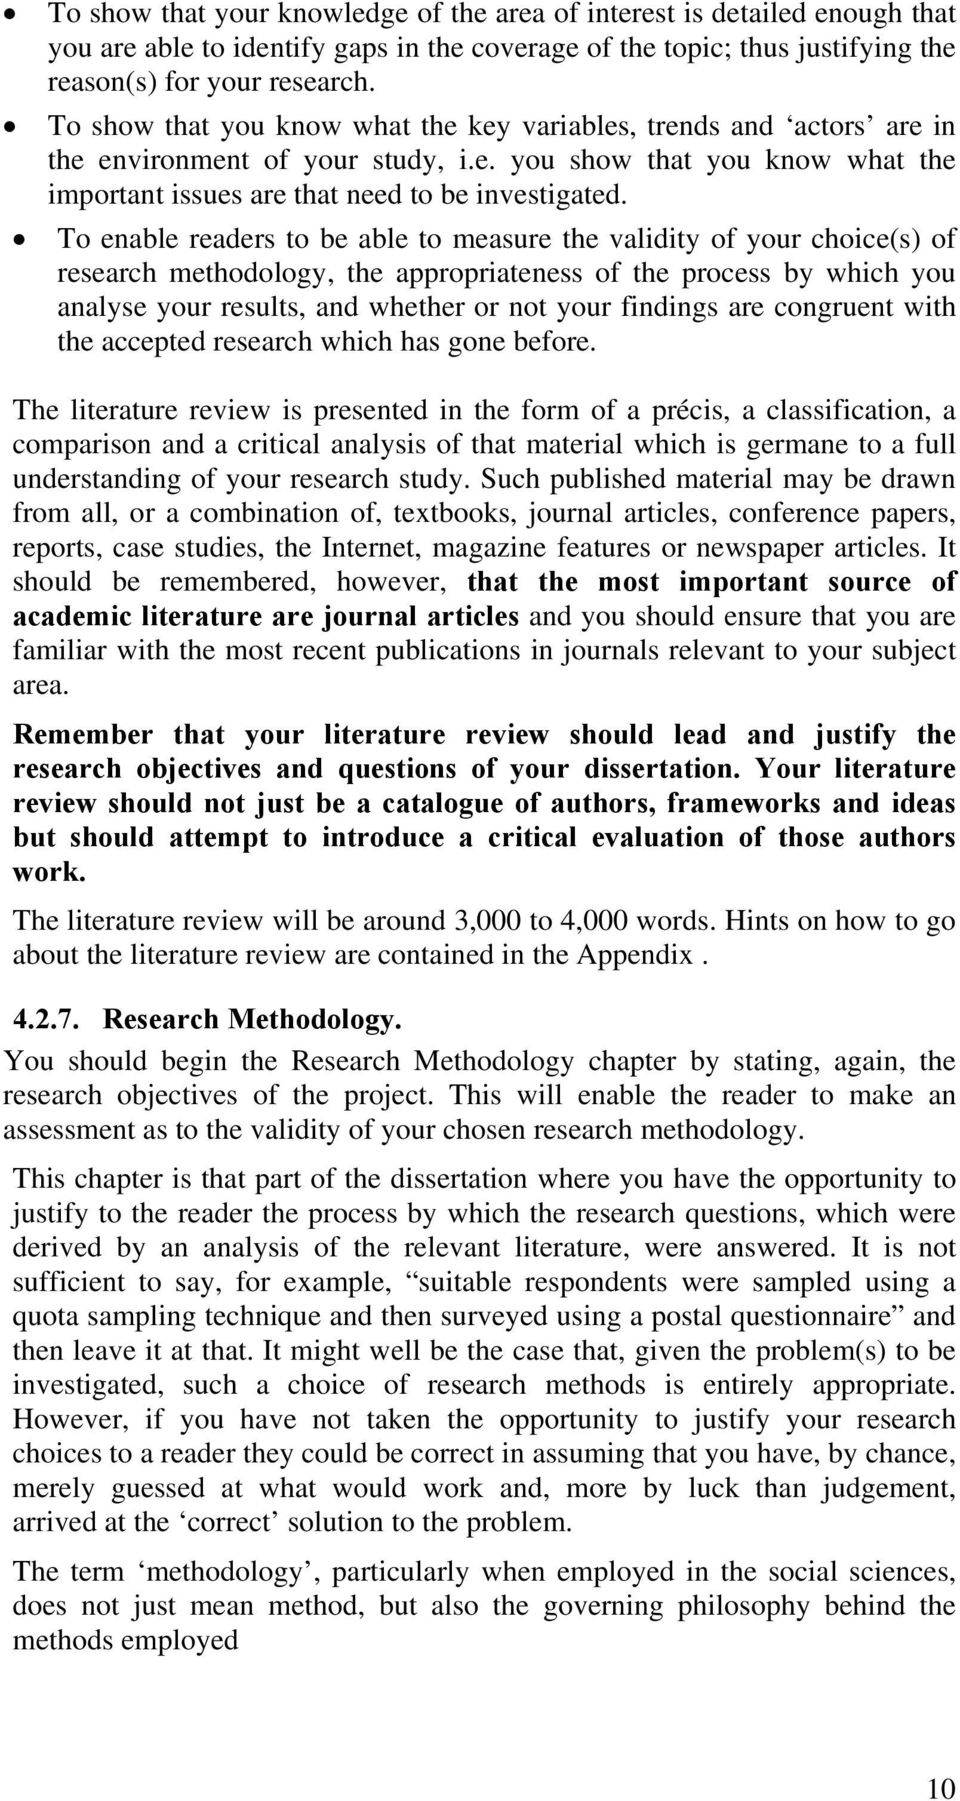 To enable readers to be able to measure the validity of your choice(s) of research methodology, the appropriateness of the process by which you analyse your results, and whether or not your findings